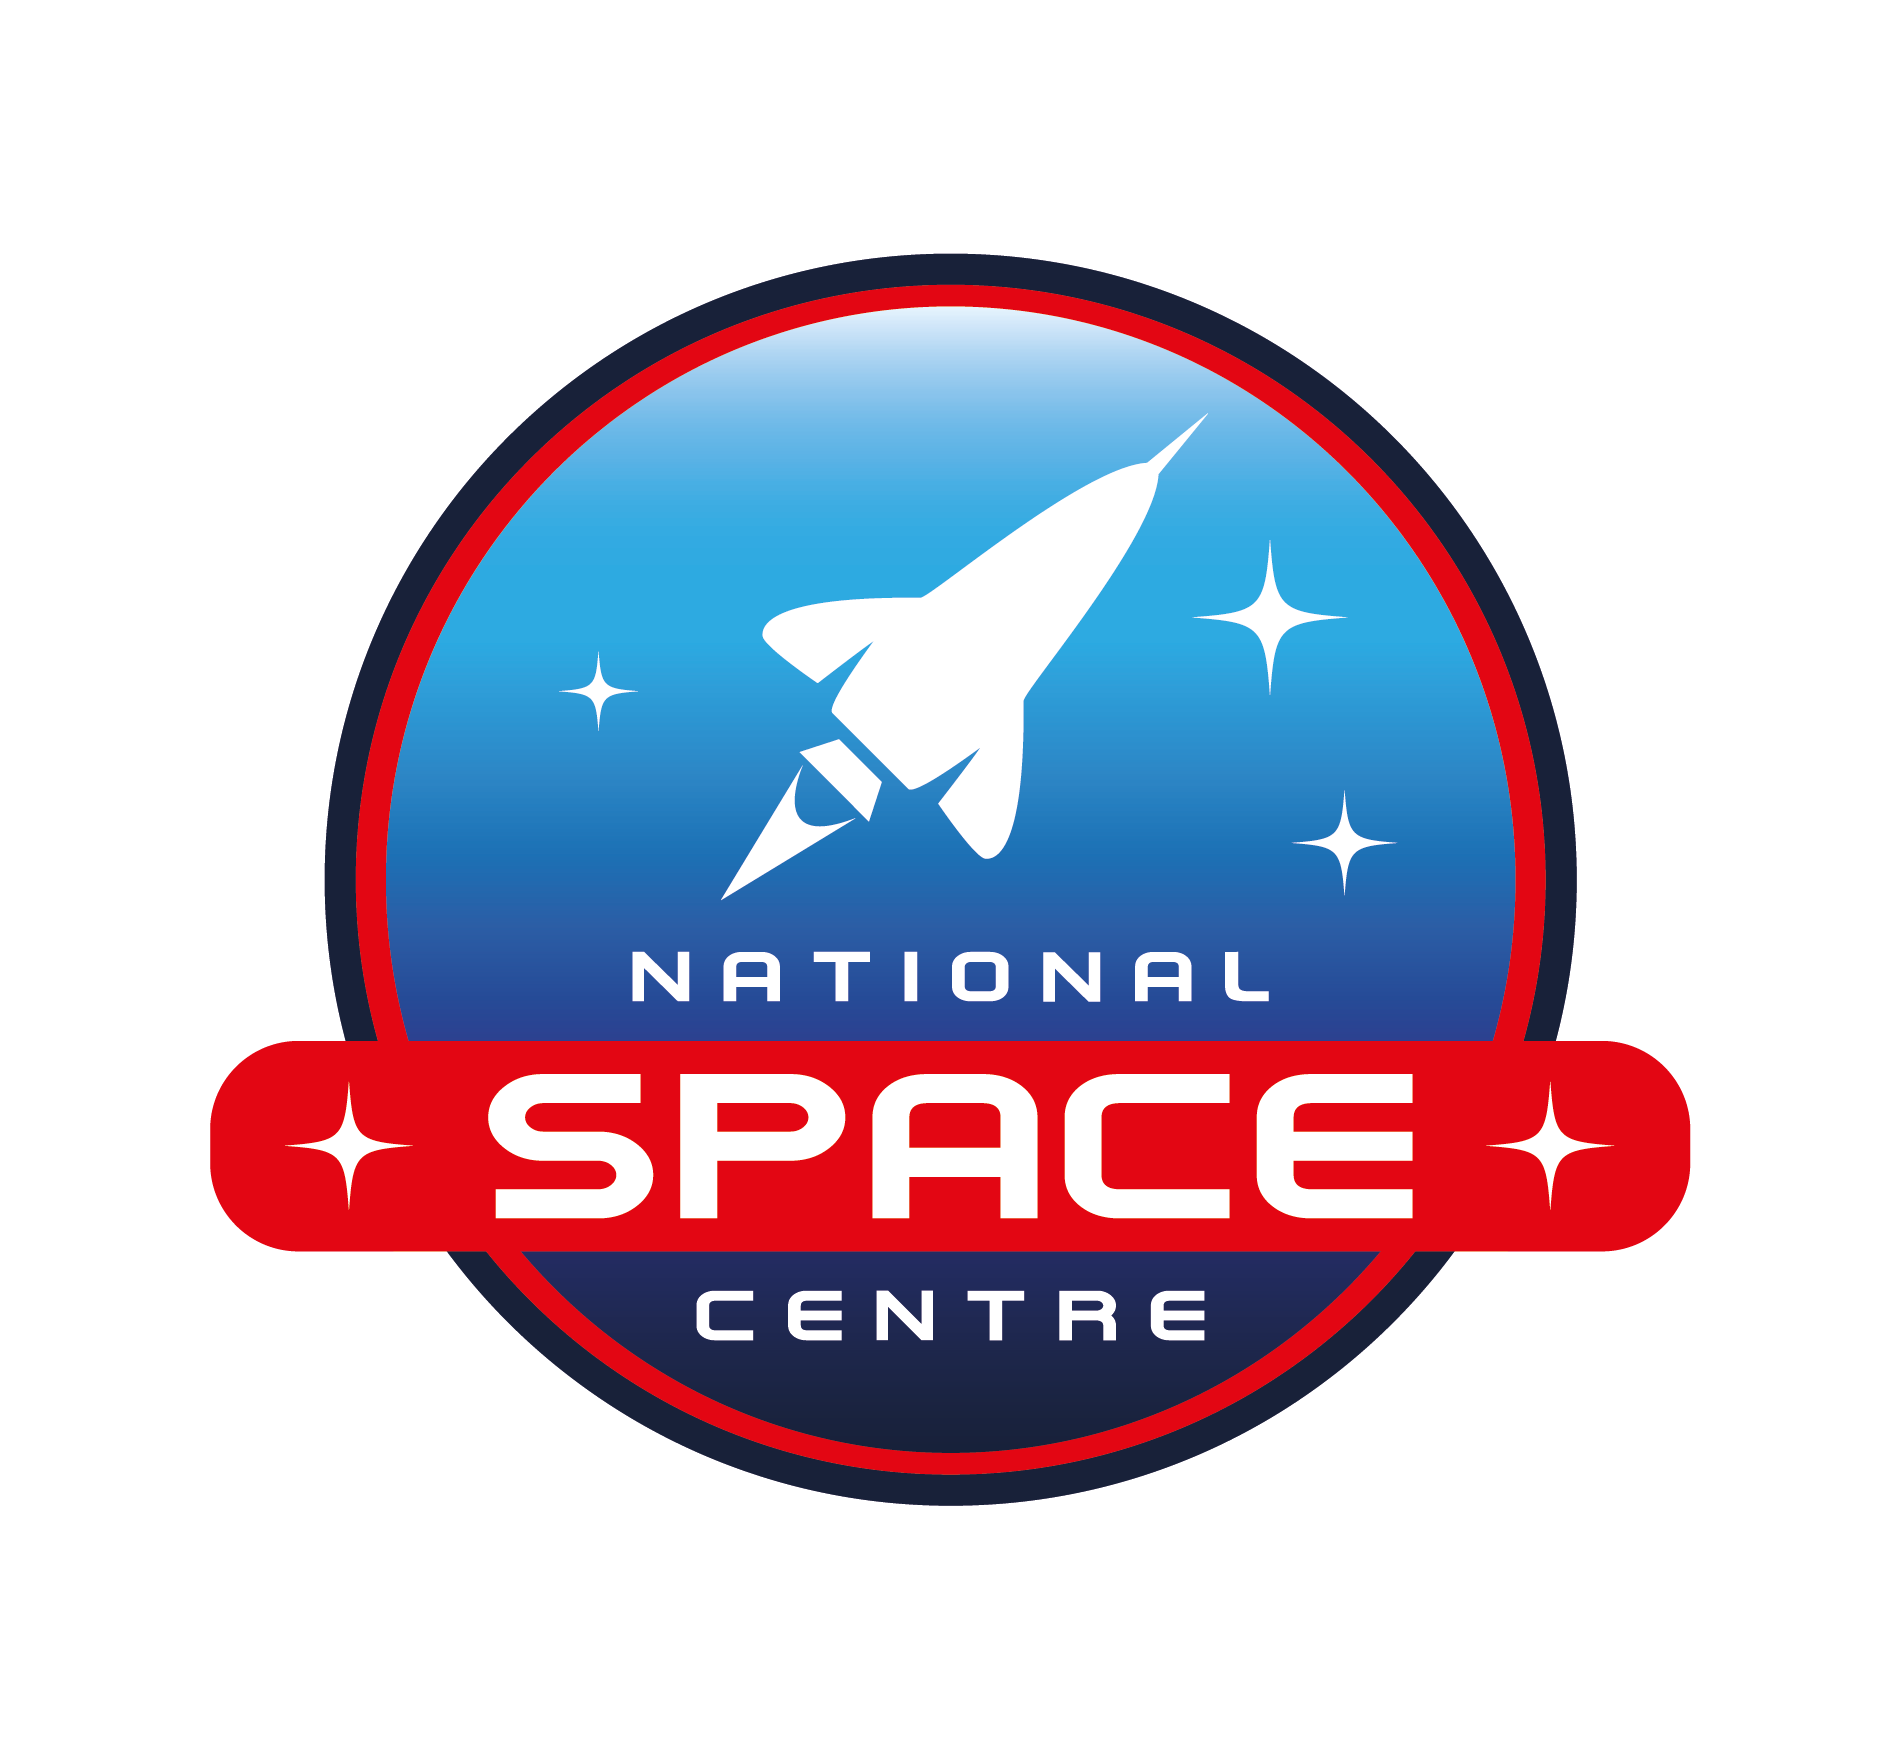 RL - National Space Ce...